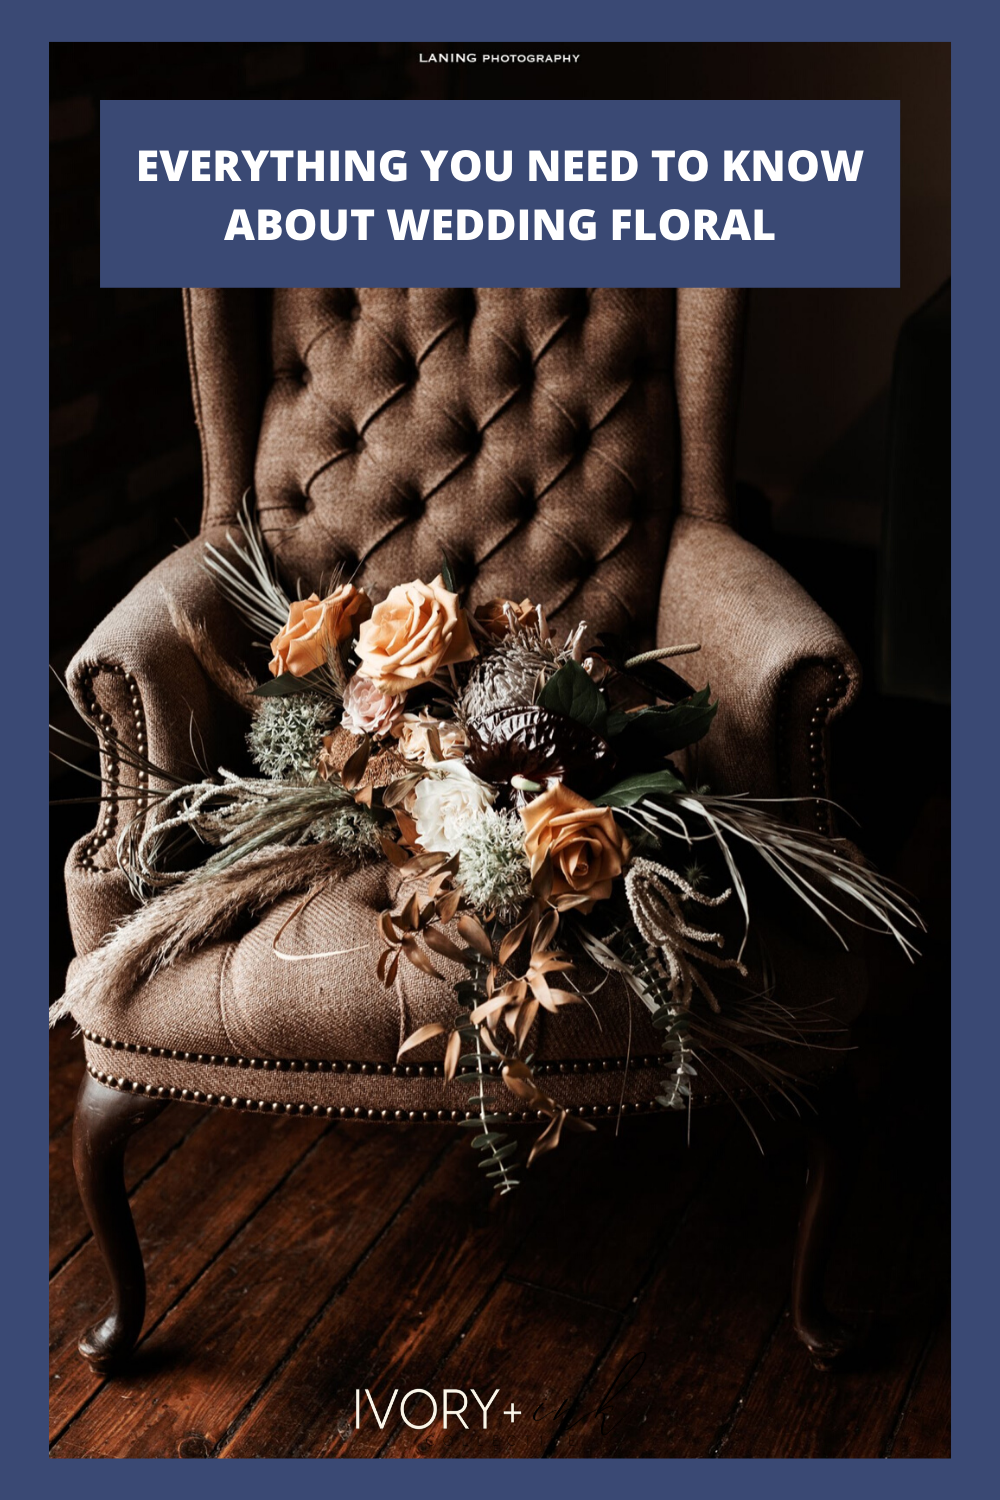 Everything You Need to Know About Wedding Floral - originally published on ivoryandink.com